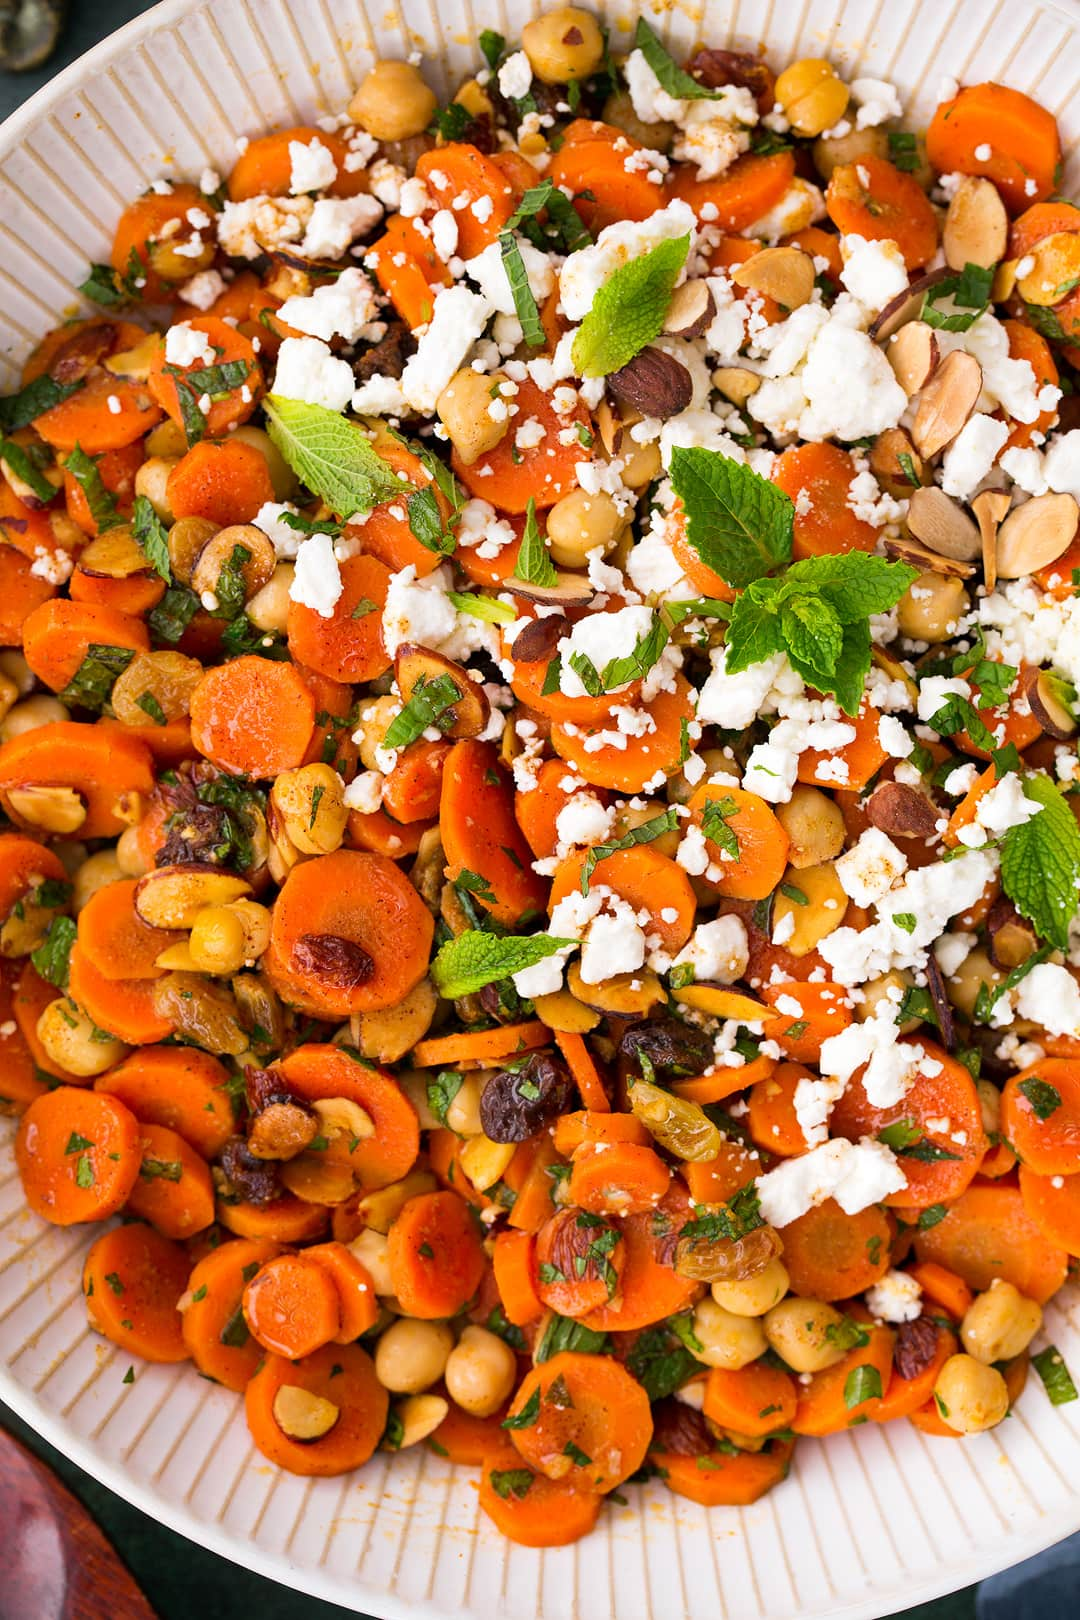 Carrot Salad with Chick Peas Feta and Almonds